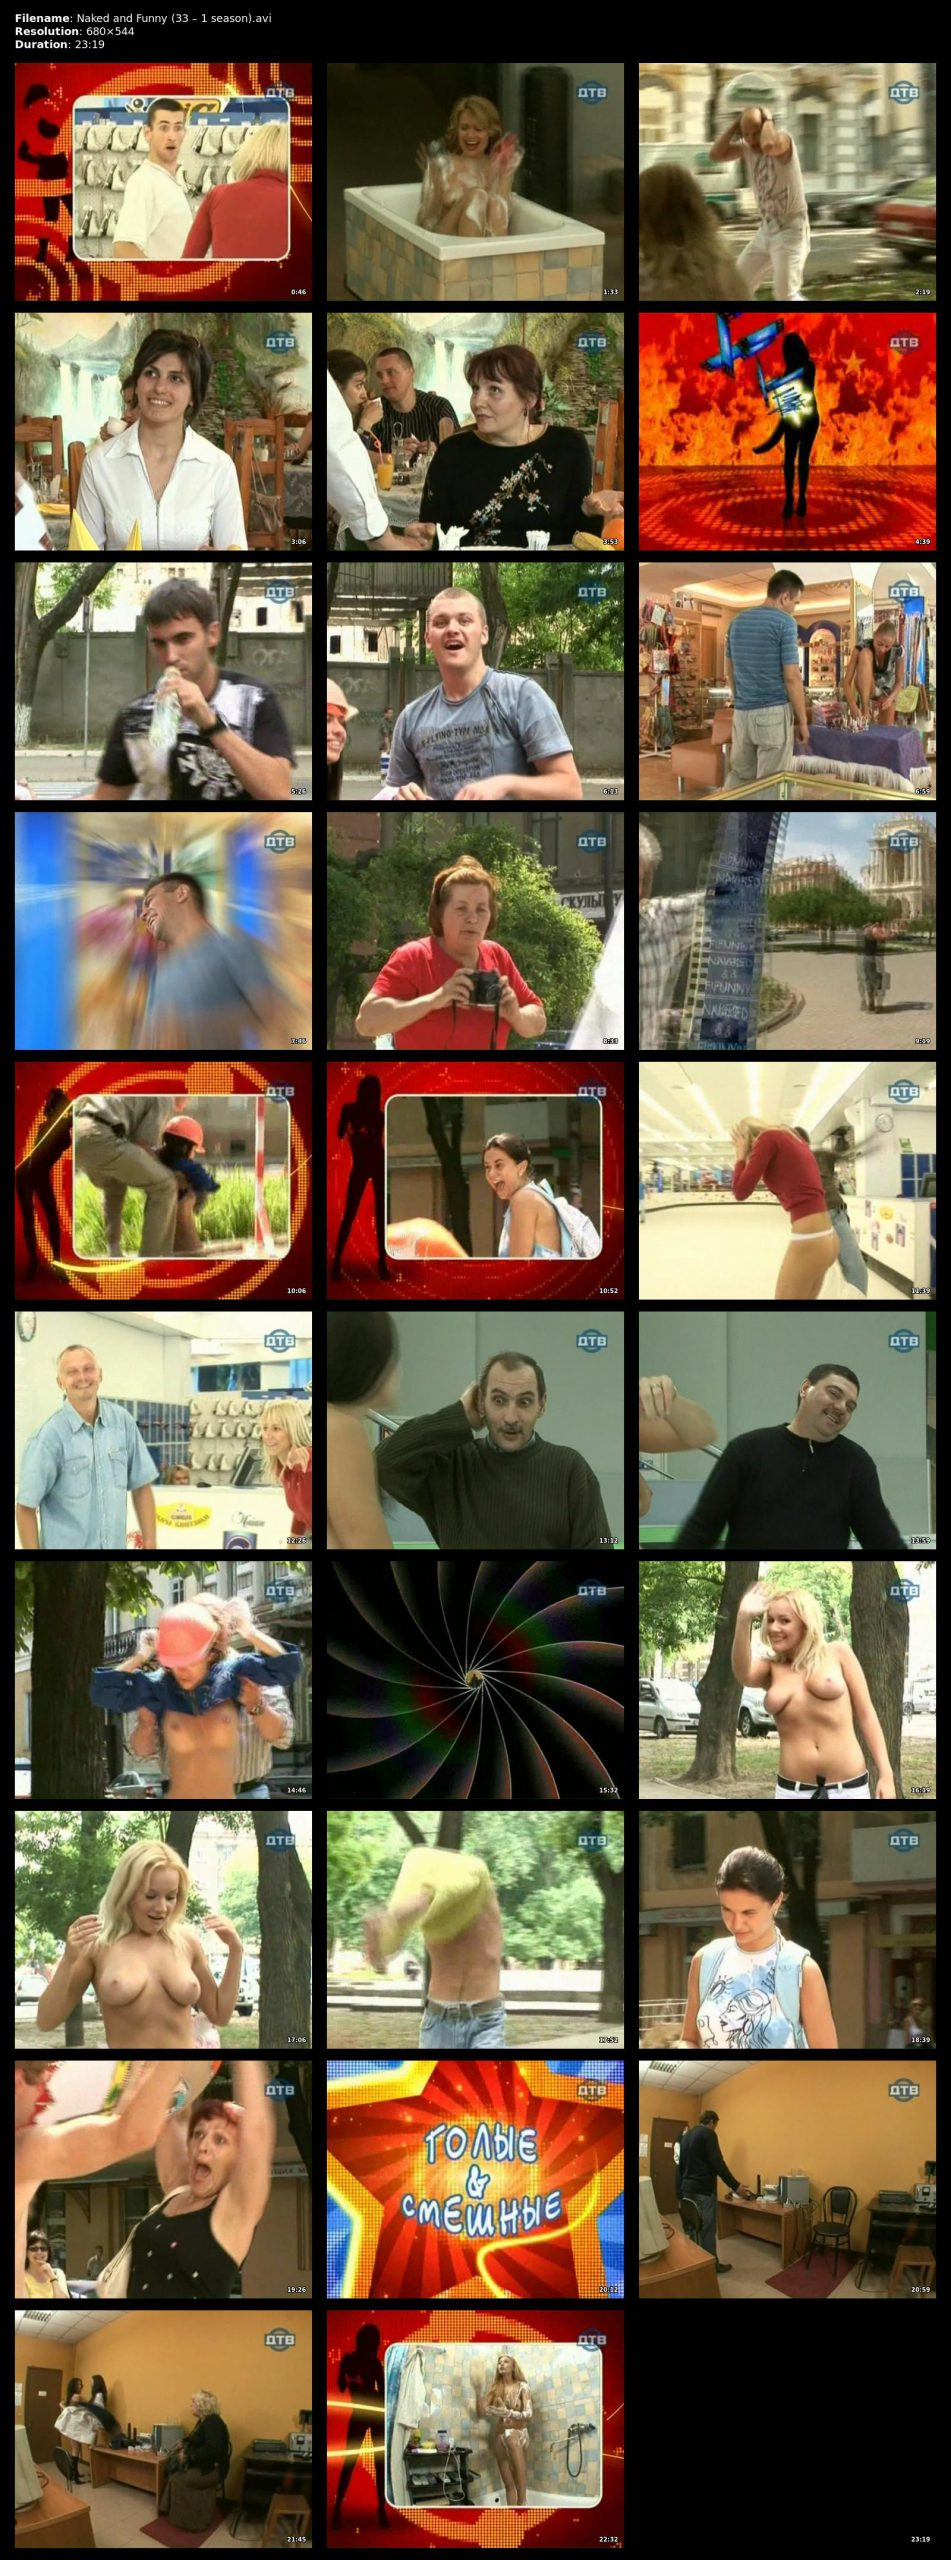 Naked and Funny (33 – 1 season)